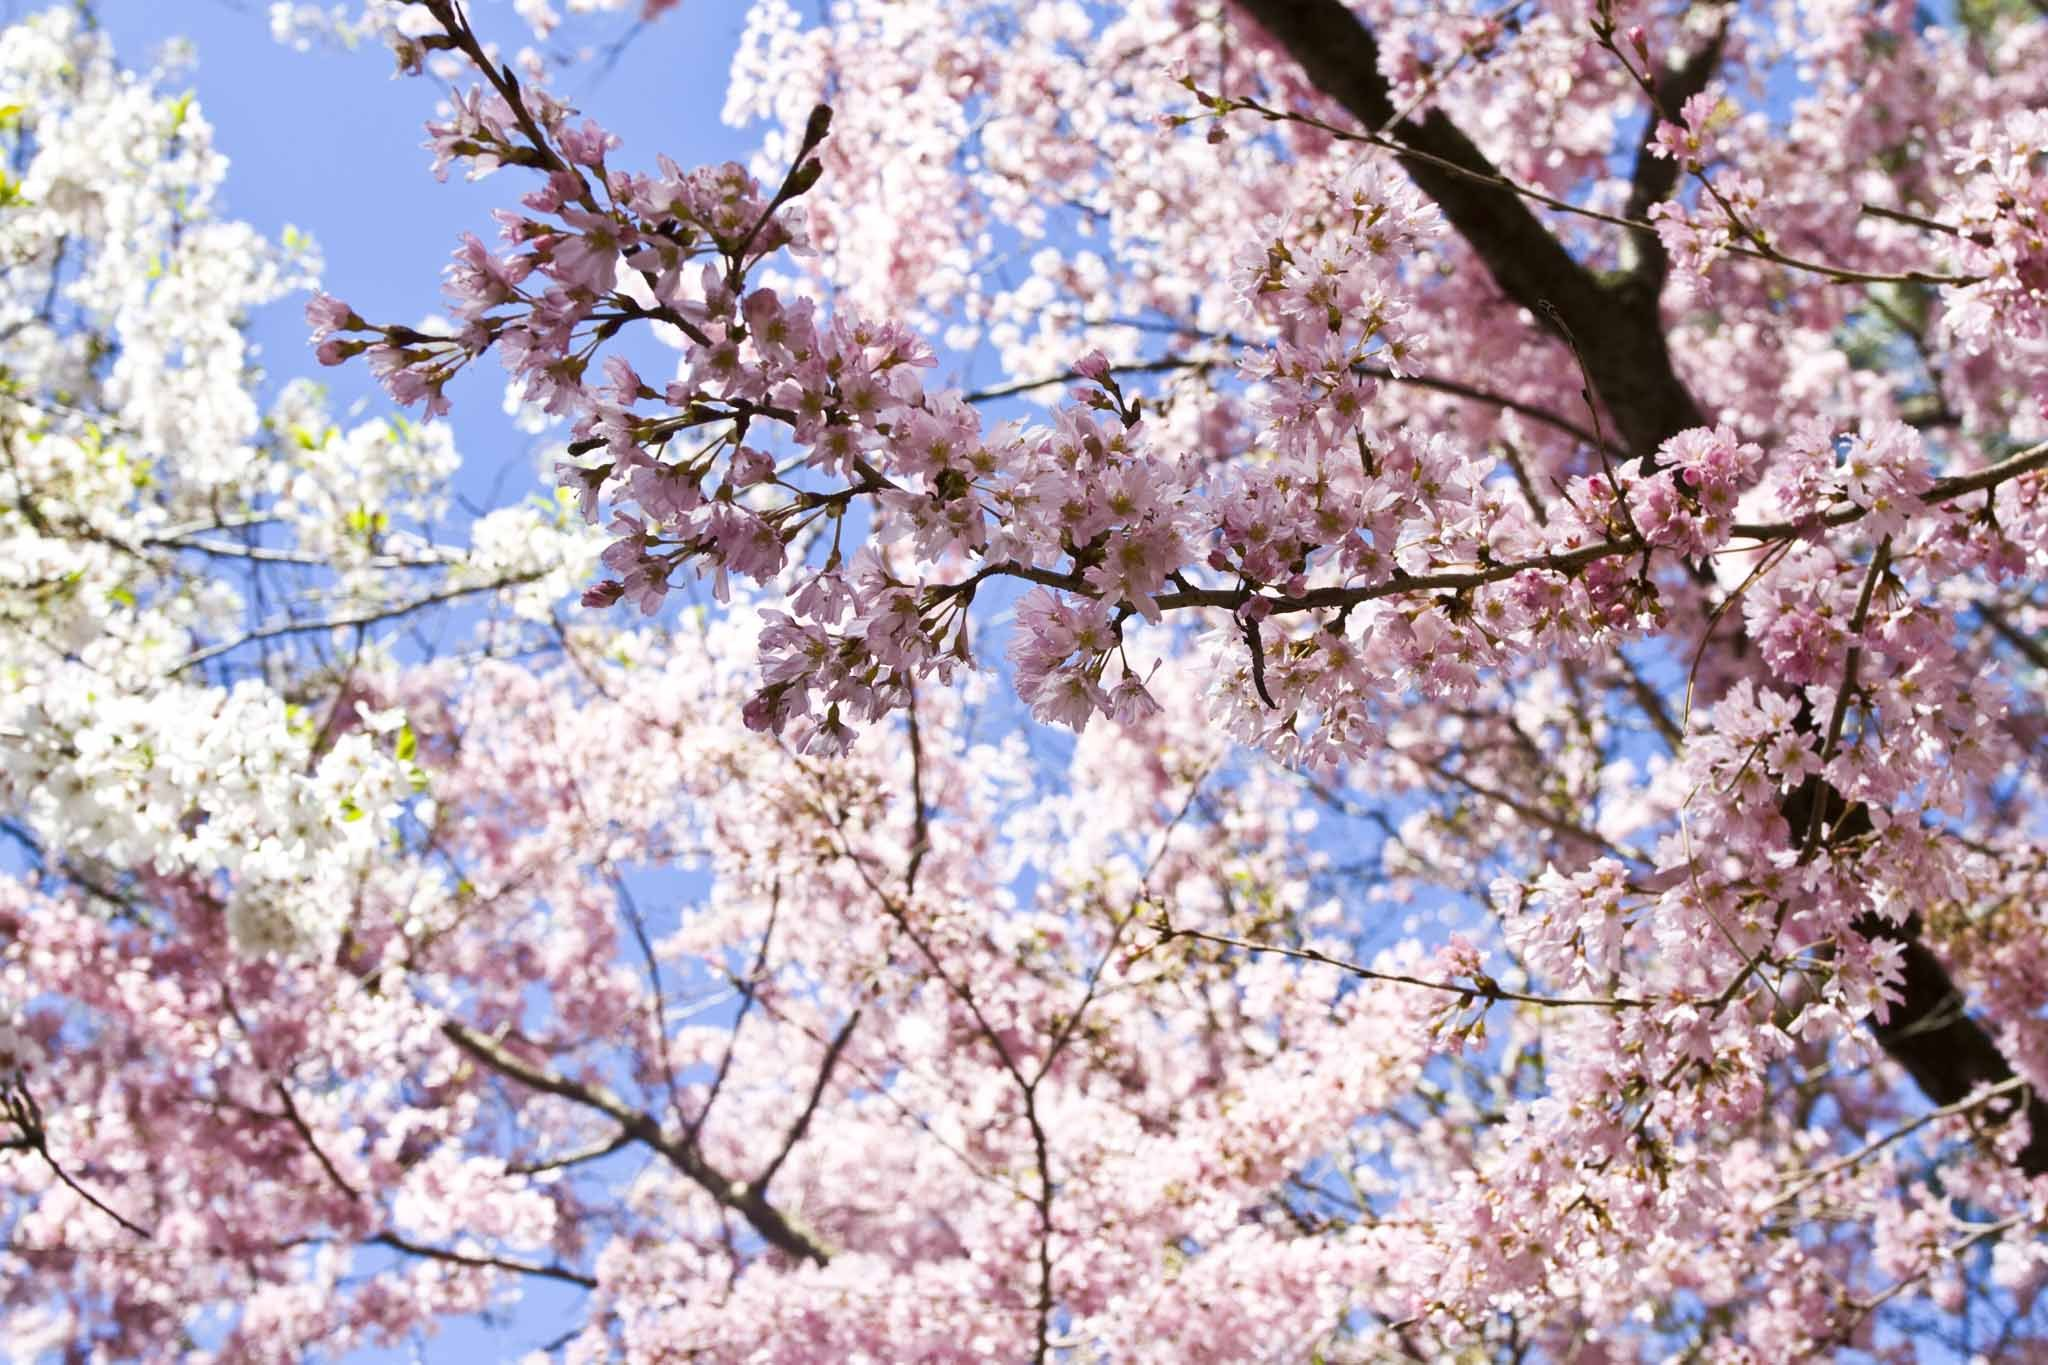 Cherry Blossom Season at the Brooklyn Botanic Garden